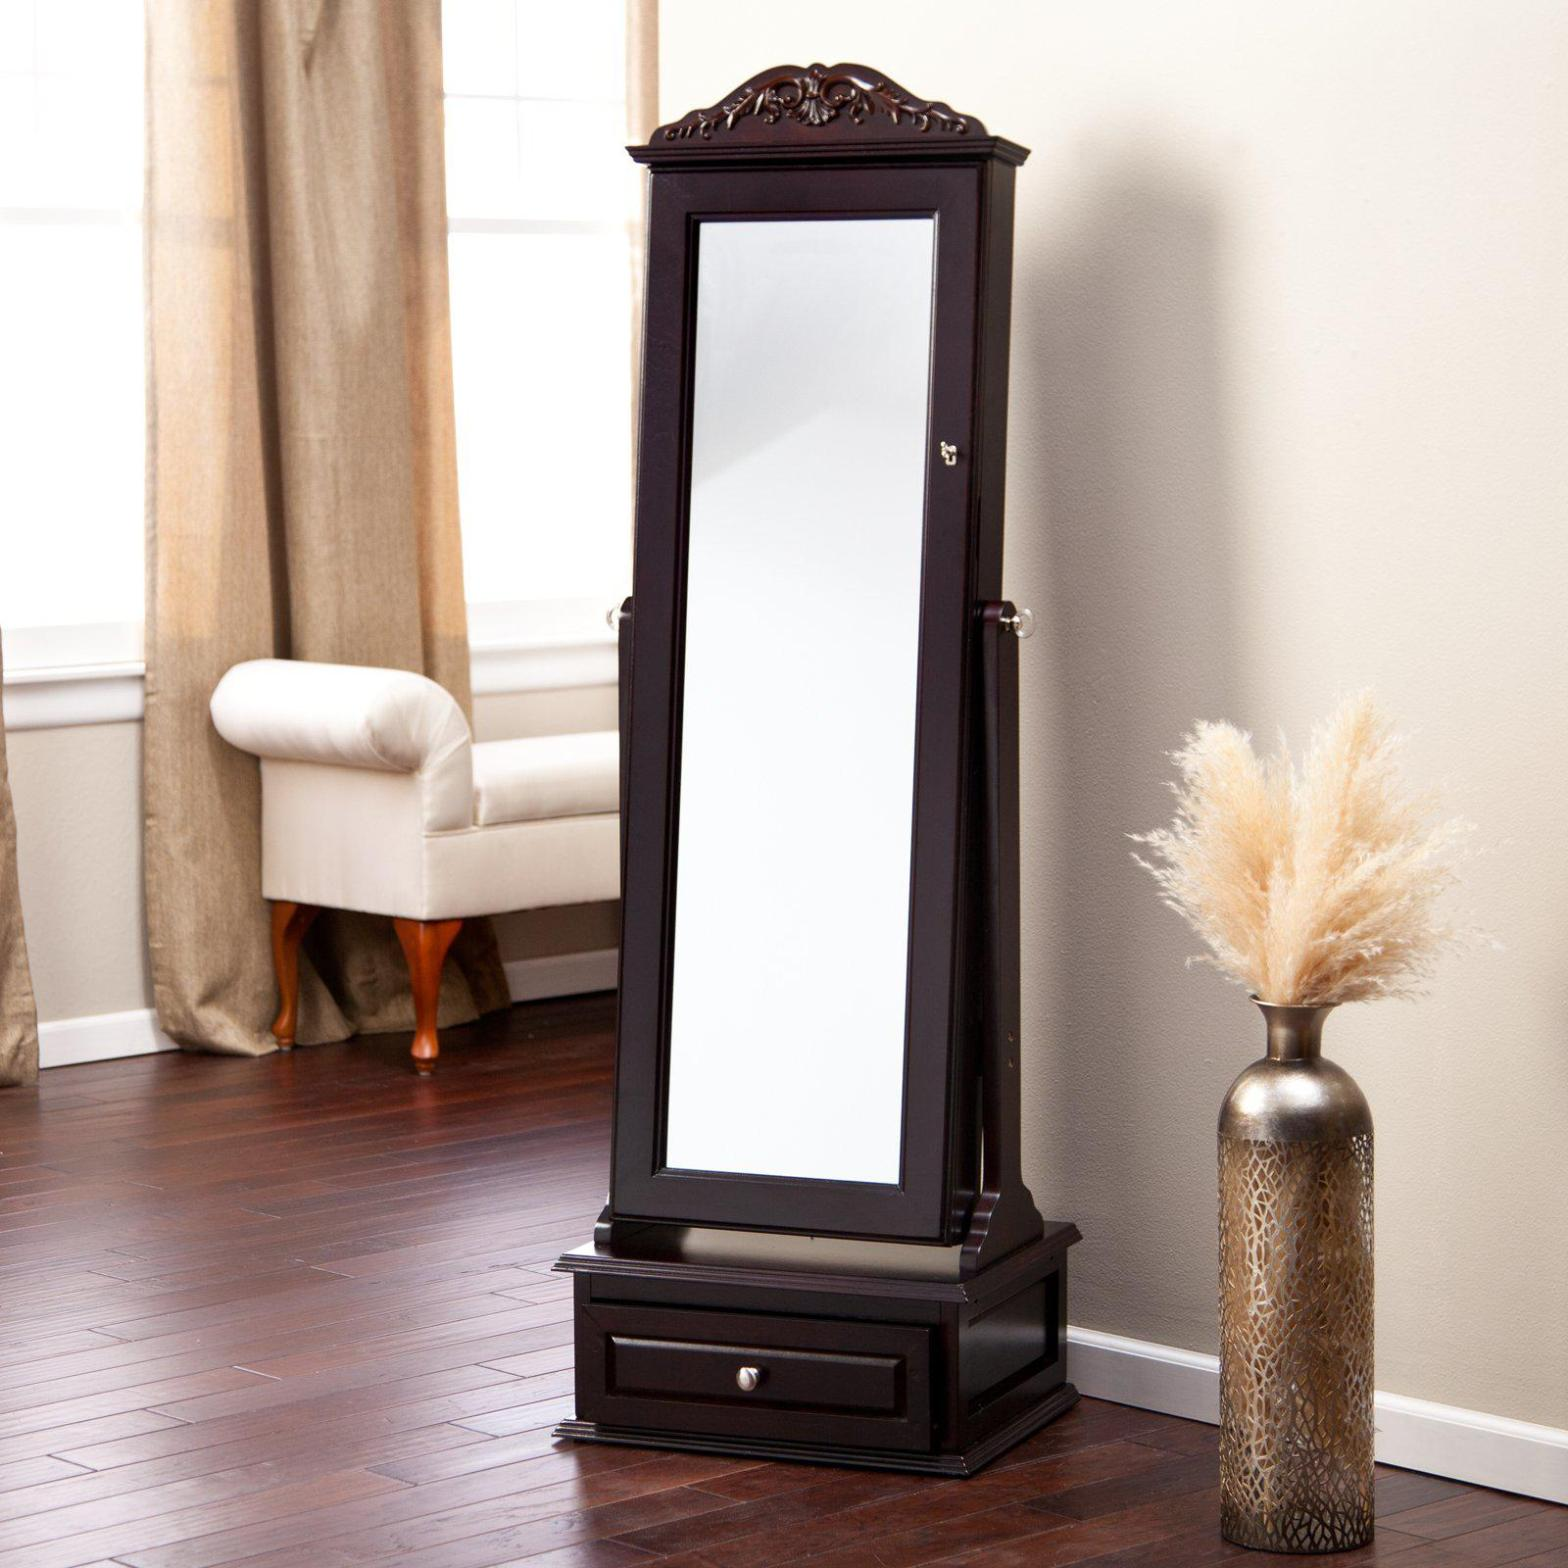 Image of: Floor Standing Mirror Jewelry Armoire